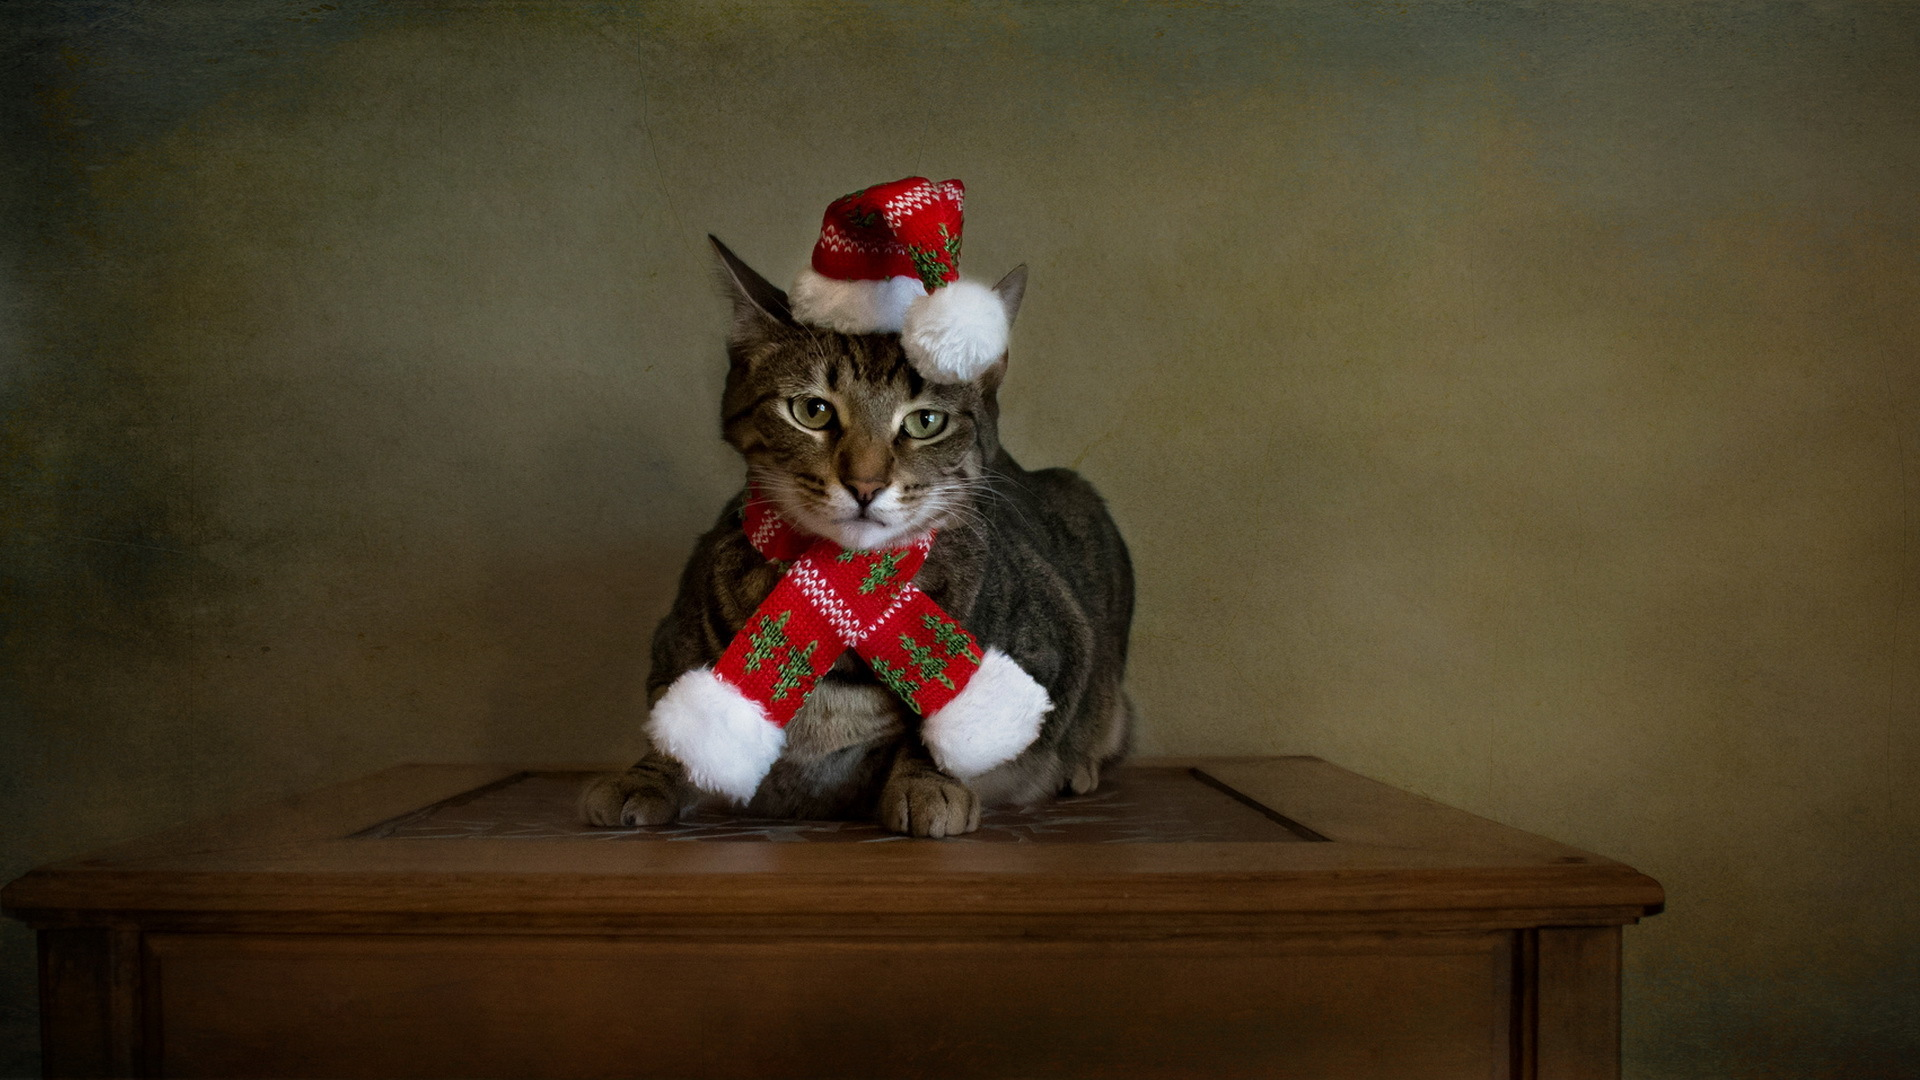 Images Cats New year Hat animal Holidays 1920x1080